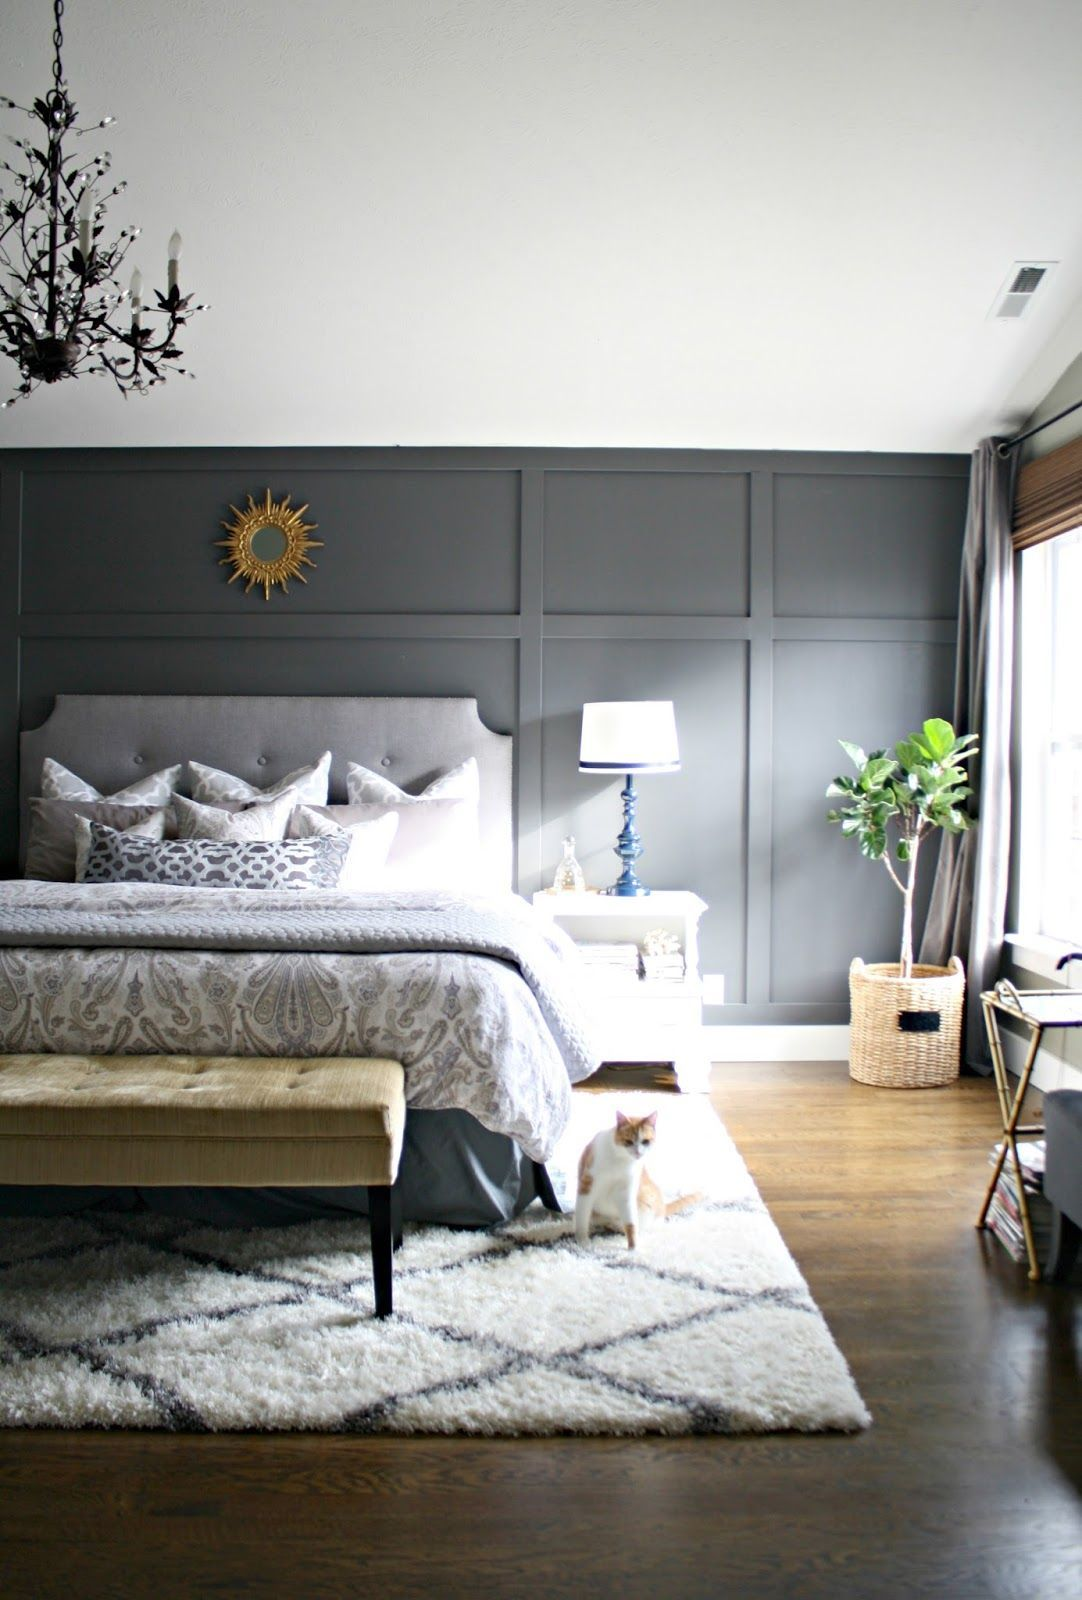 Accent Wall Ideas For Master Bedroom Go Through These Diy Accent Wall Ideas If You Are Soon Planning